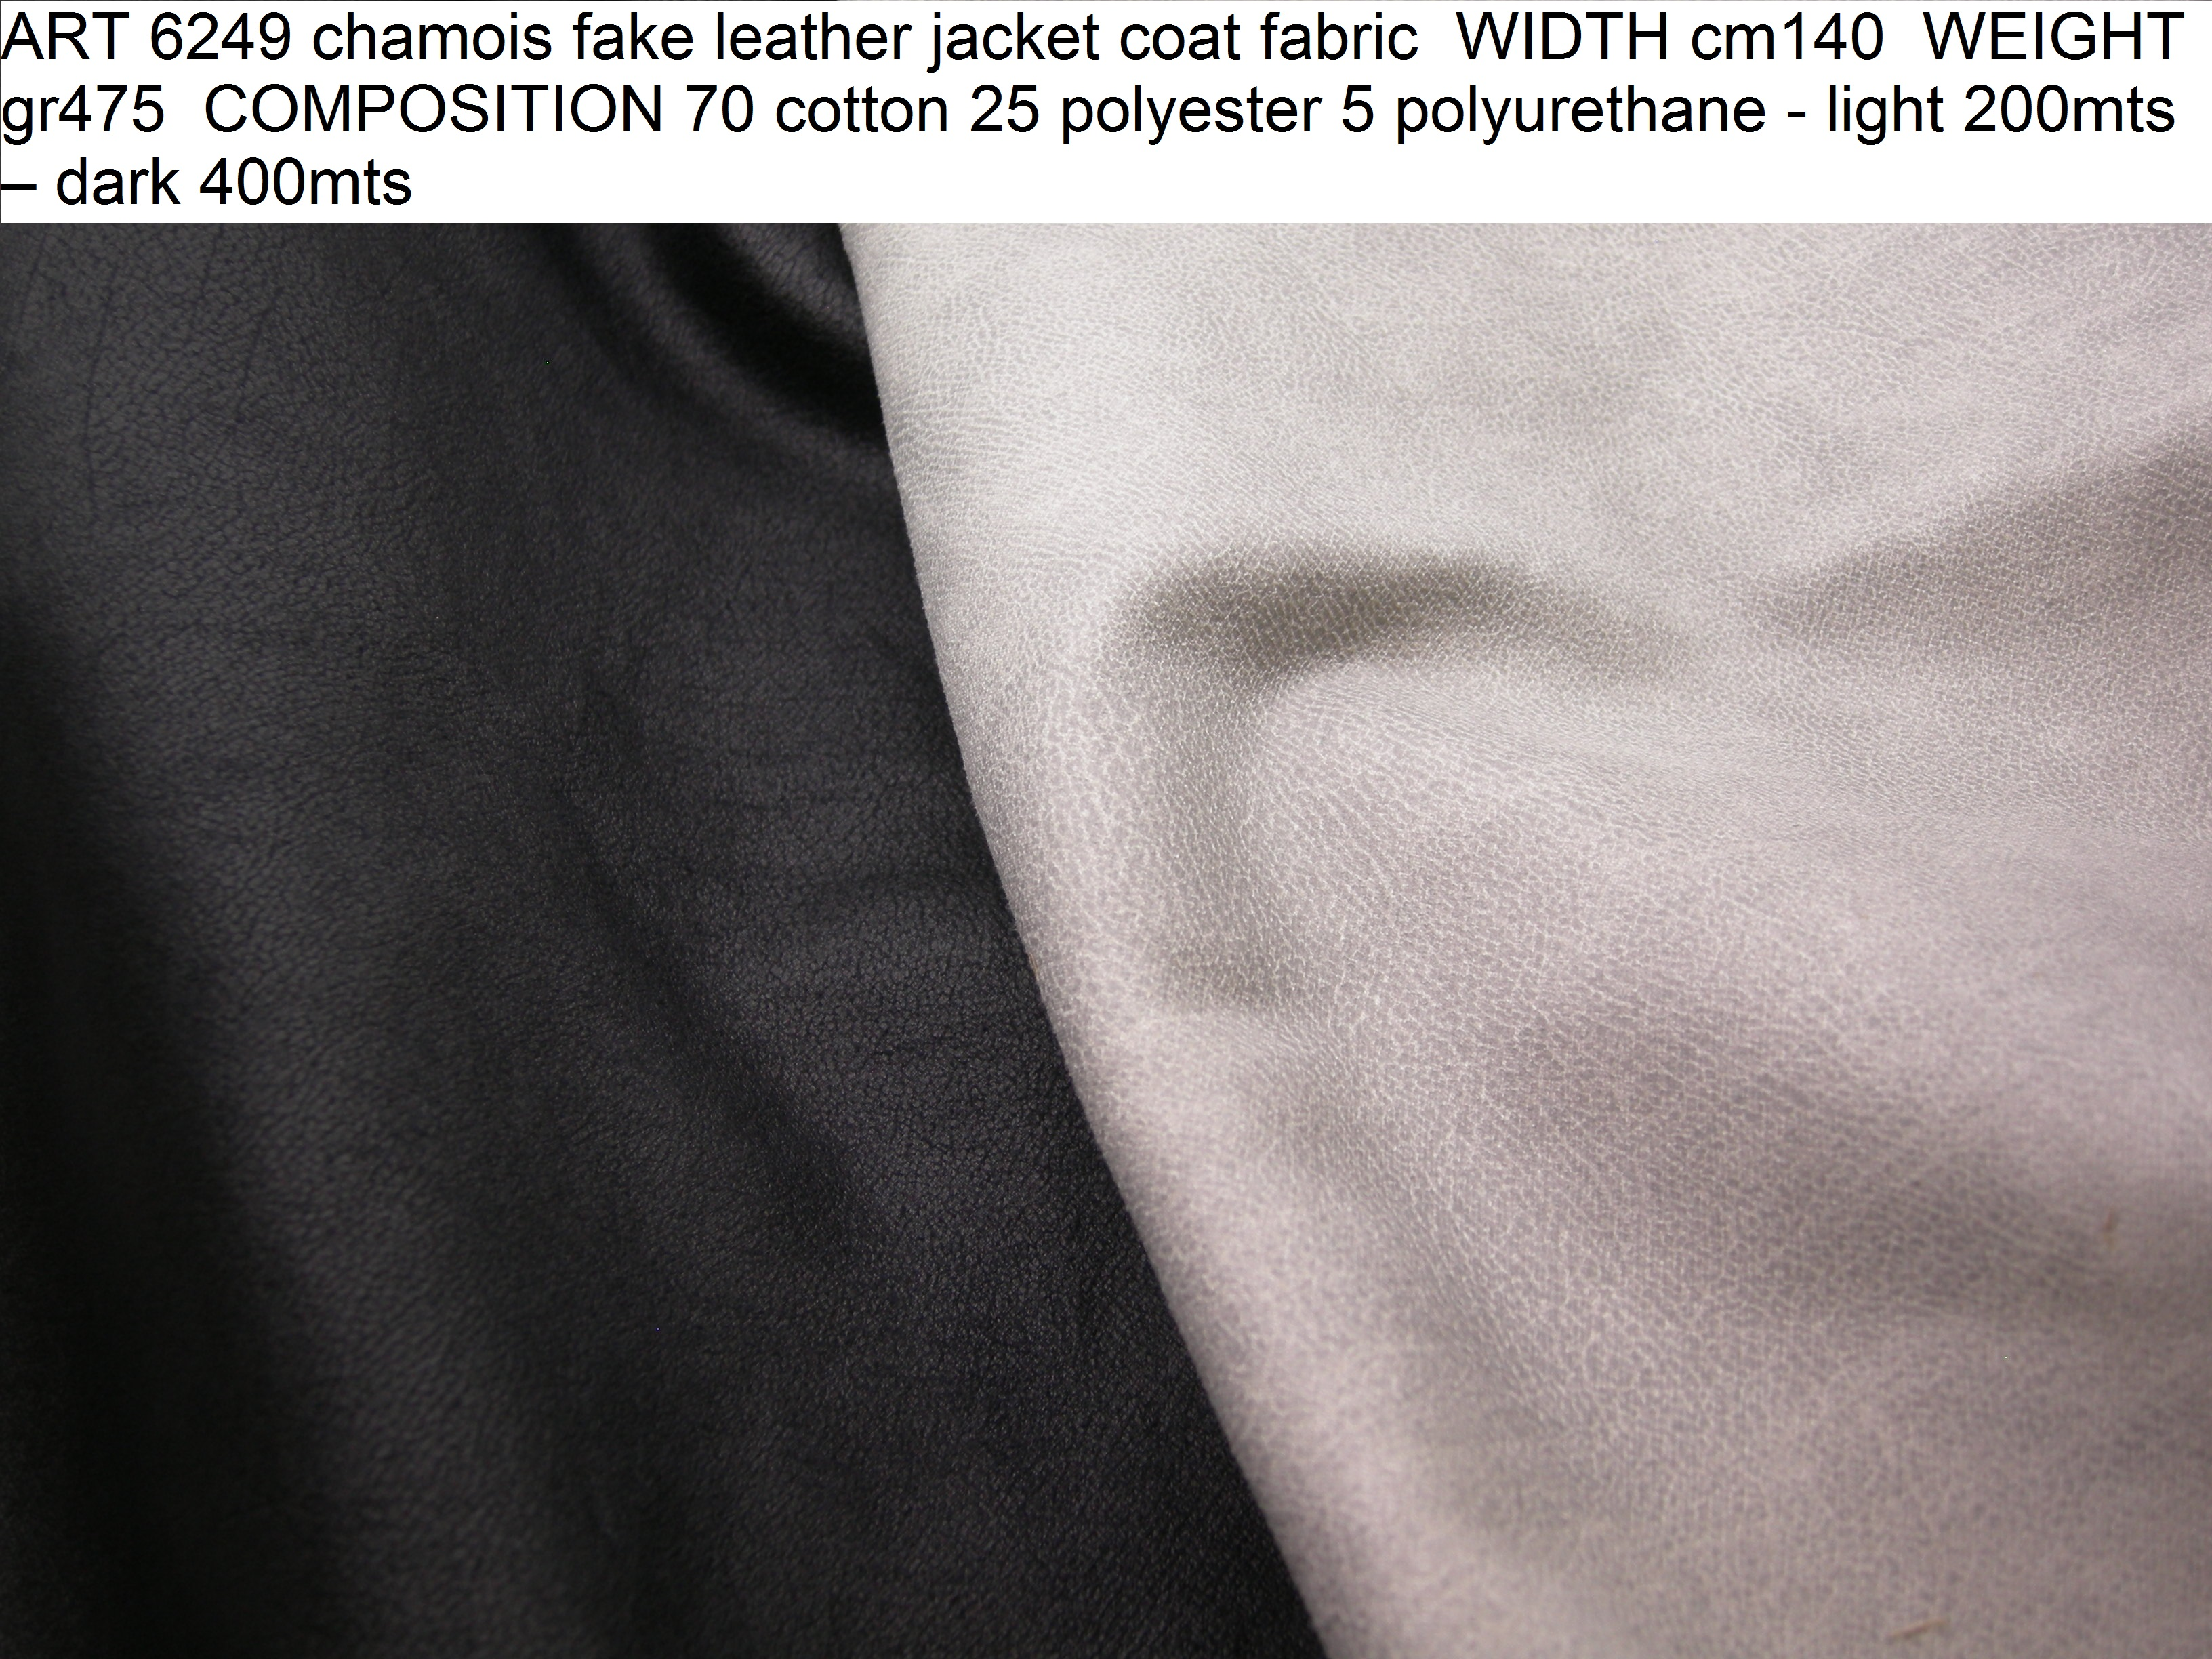 ART 6249 chamois fake leather jacket coat fabric WIDTH cm140 WEIGHT gr475 COMPOSITION 70 cotton 25 polyester 5 polyurethane - light 200mts – dark 400mts